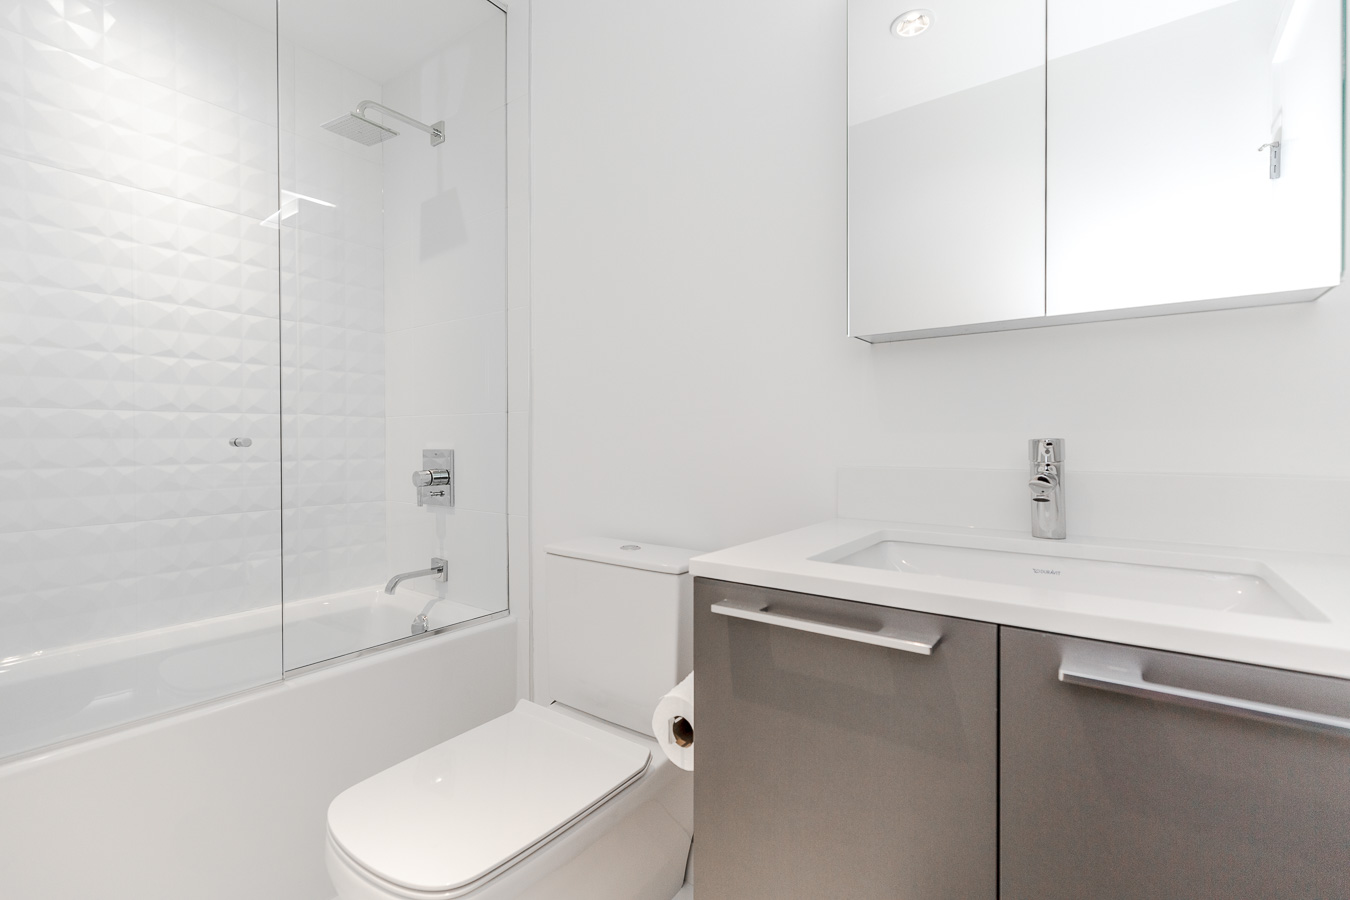 Bathroom at luxury Vancouver condo rental.